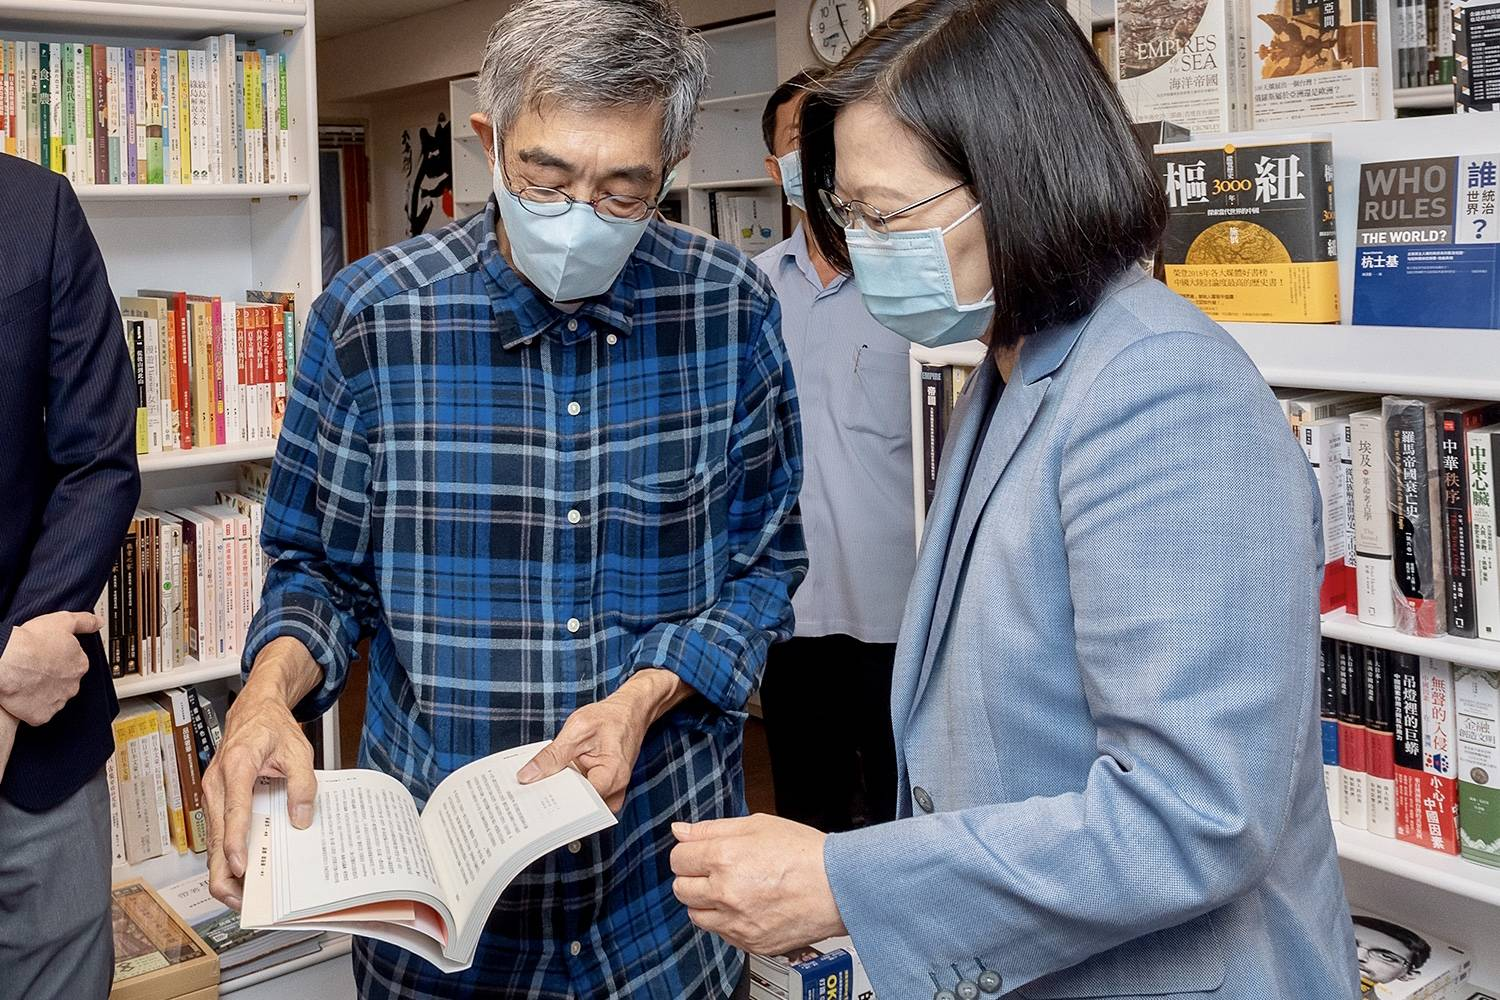 Taiwan's President Tsai Ing-wen looks at a book while visiting Lam Wing-kee, a bookseller from Hong Kong who in 2015 was detained in China for allegedly bringing banned books into the mainland.  | TAIWAN PRESIDENTIAL OFFICE / VIA AFP-JIJI